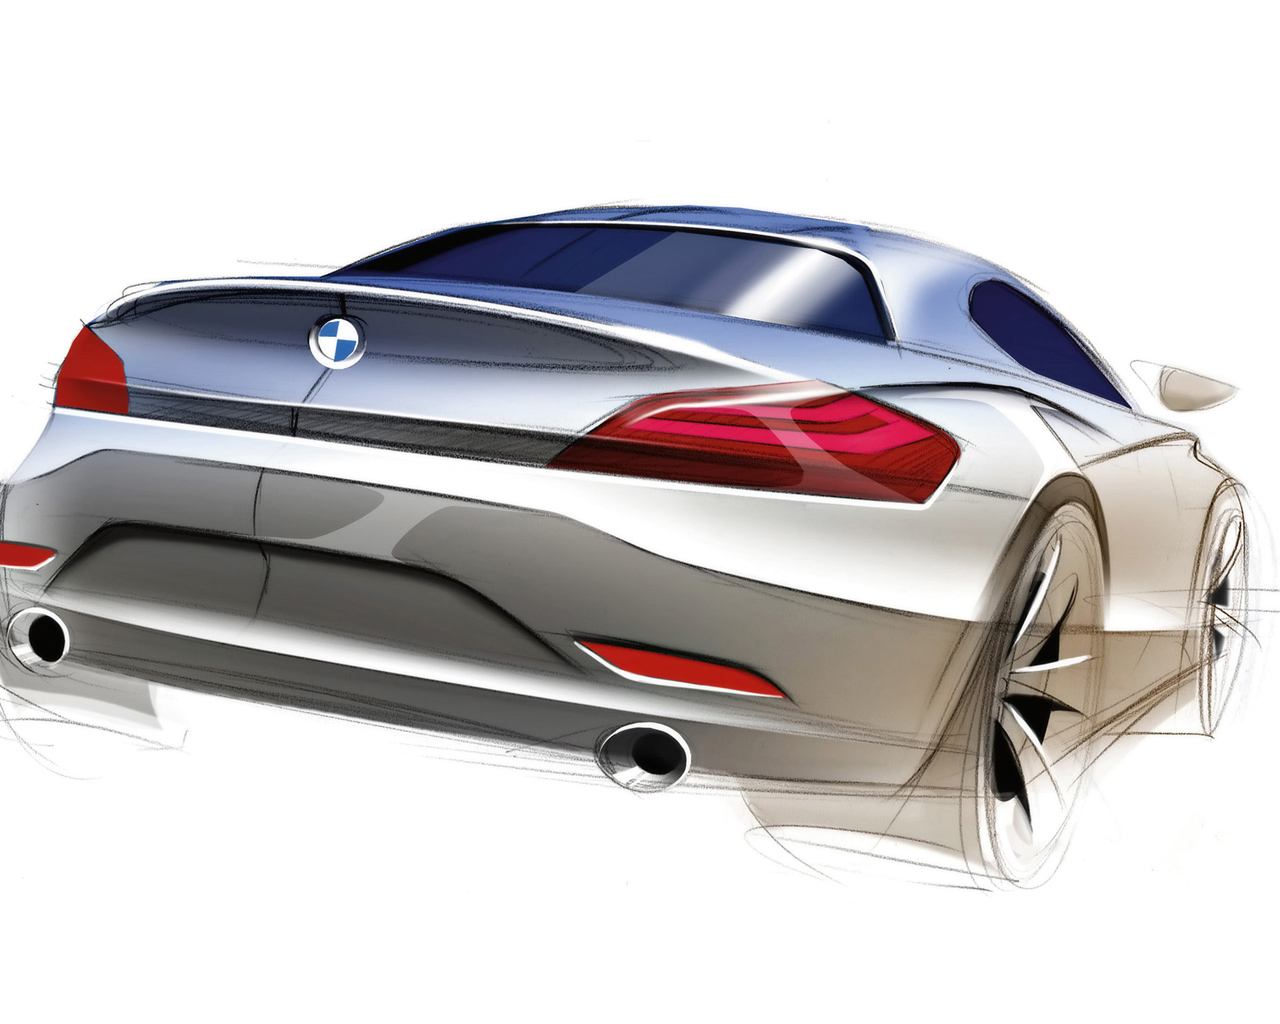 BMW Z4 Roadster Sketch